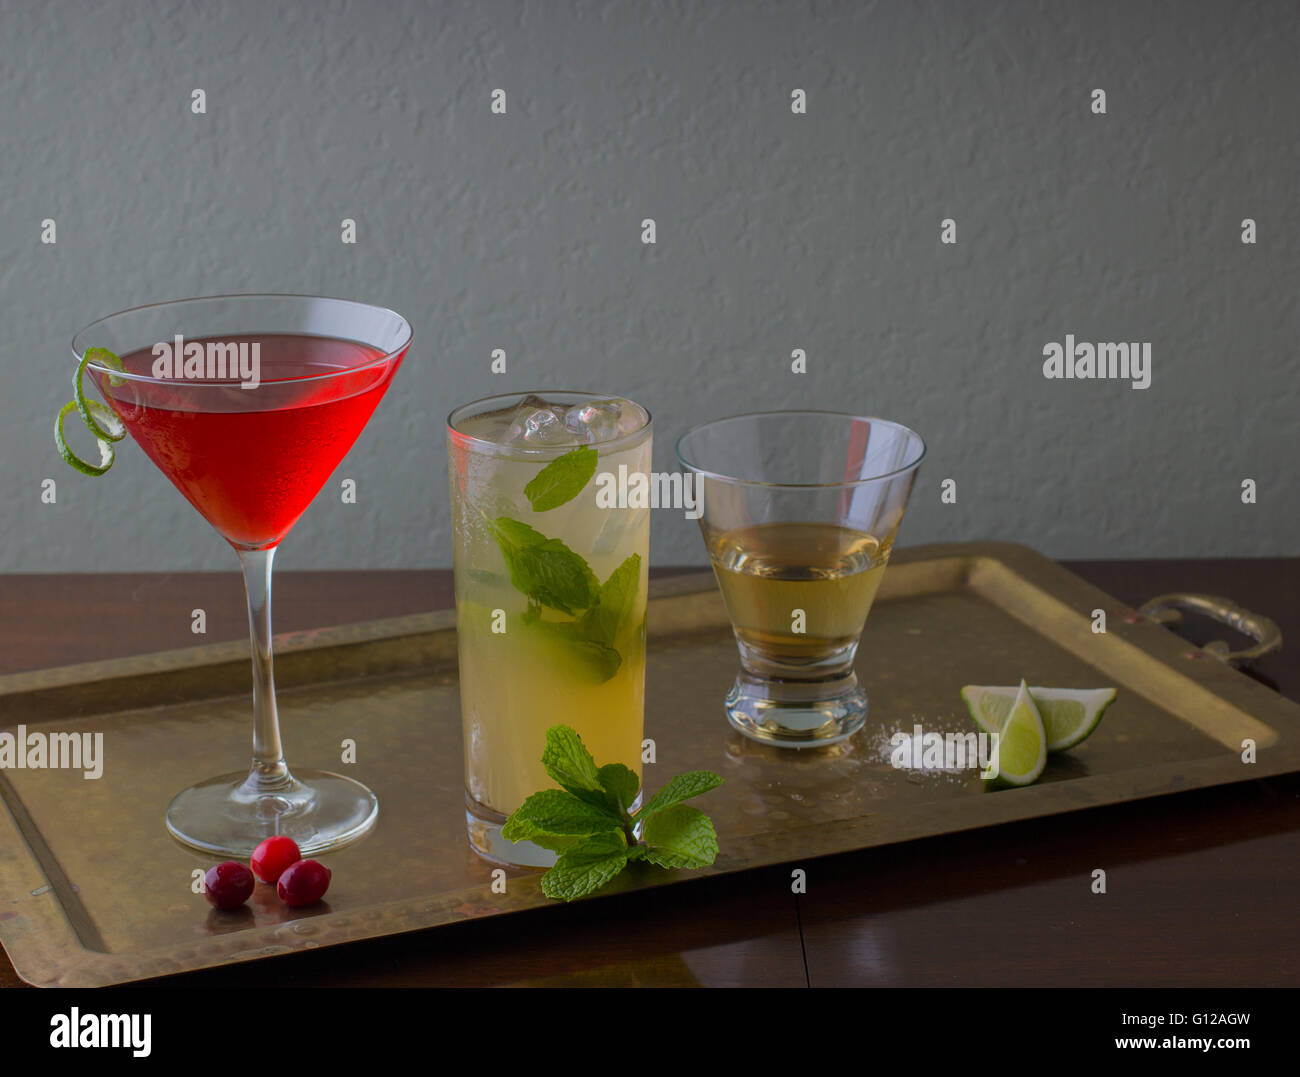 Assortment of Cocktails on Serving Tray - Stock Image